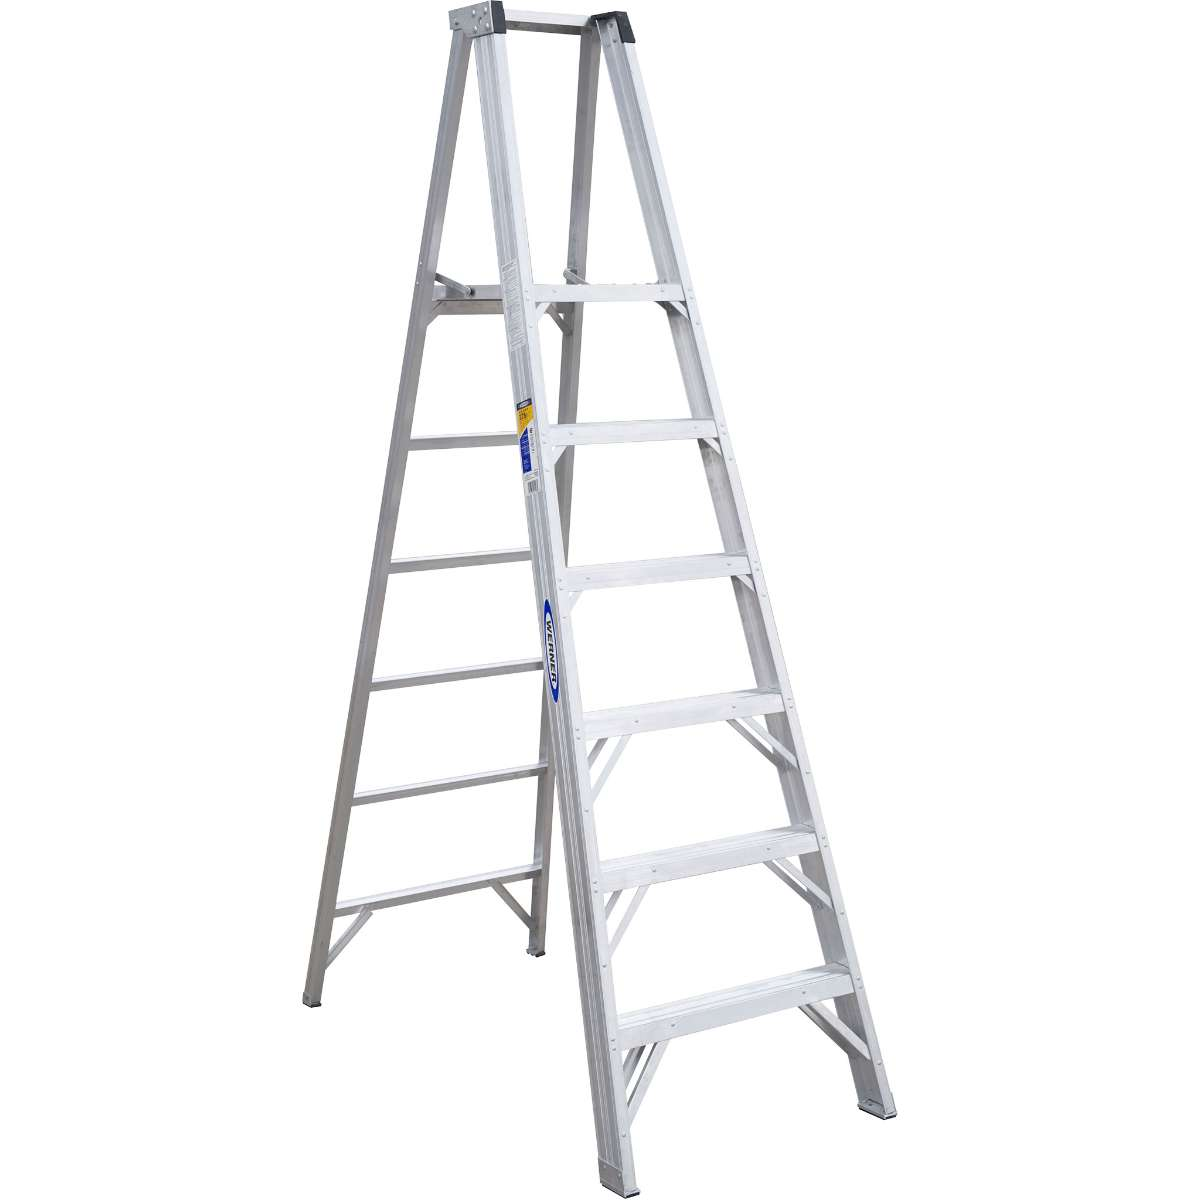 Aluminum Platform Step Ladder - 375 lb. Capacity (P400 Series)